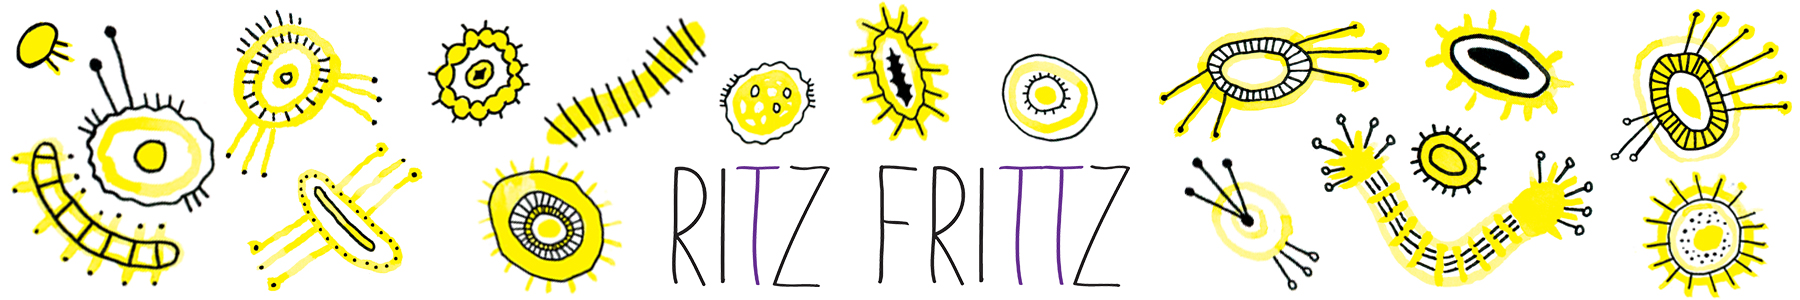 ritz_frittz_capa_home_web